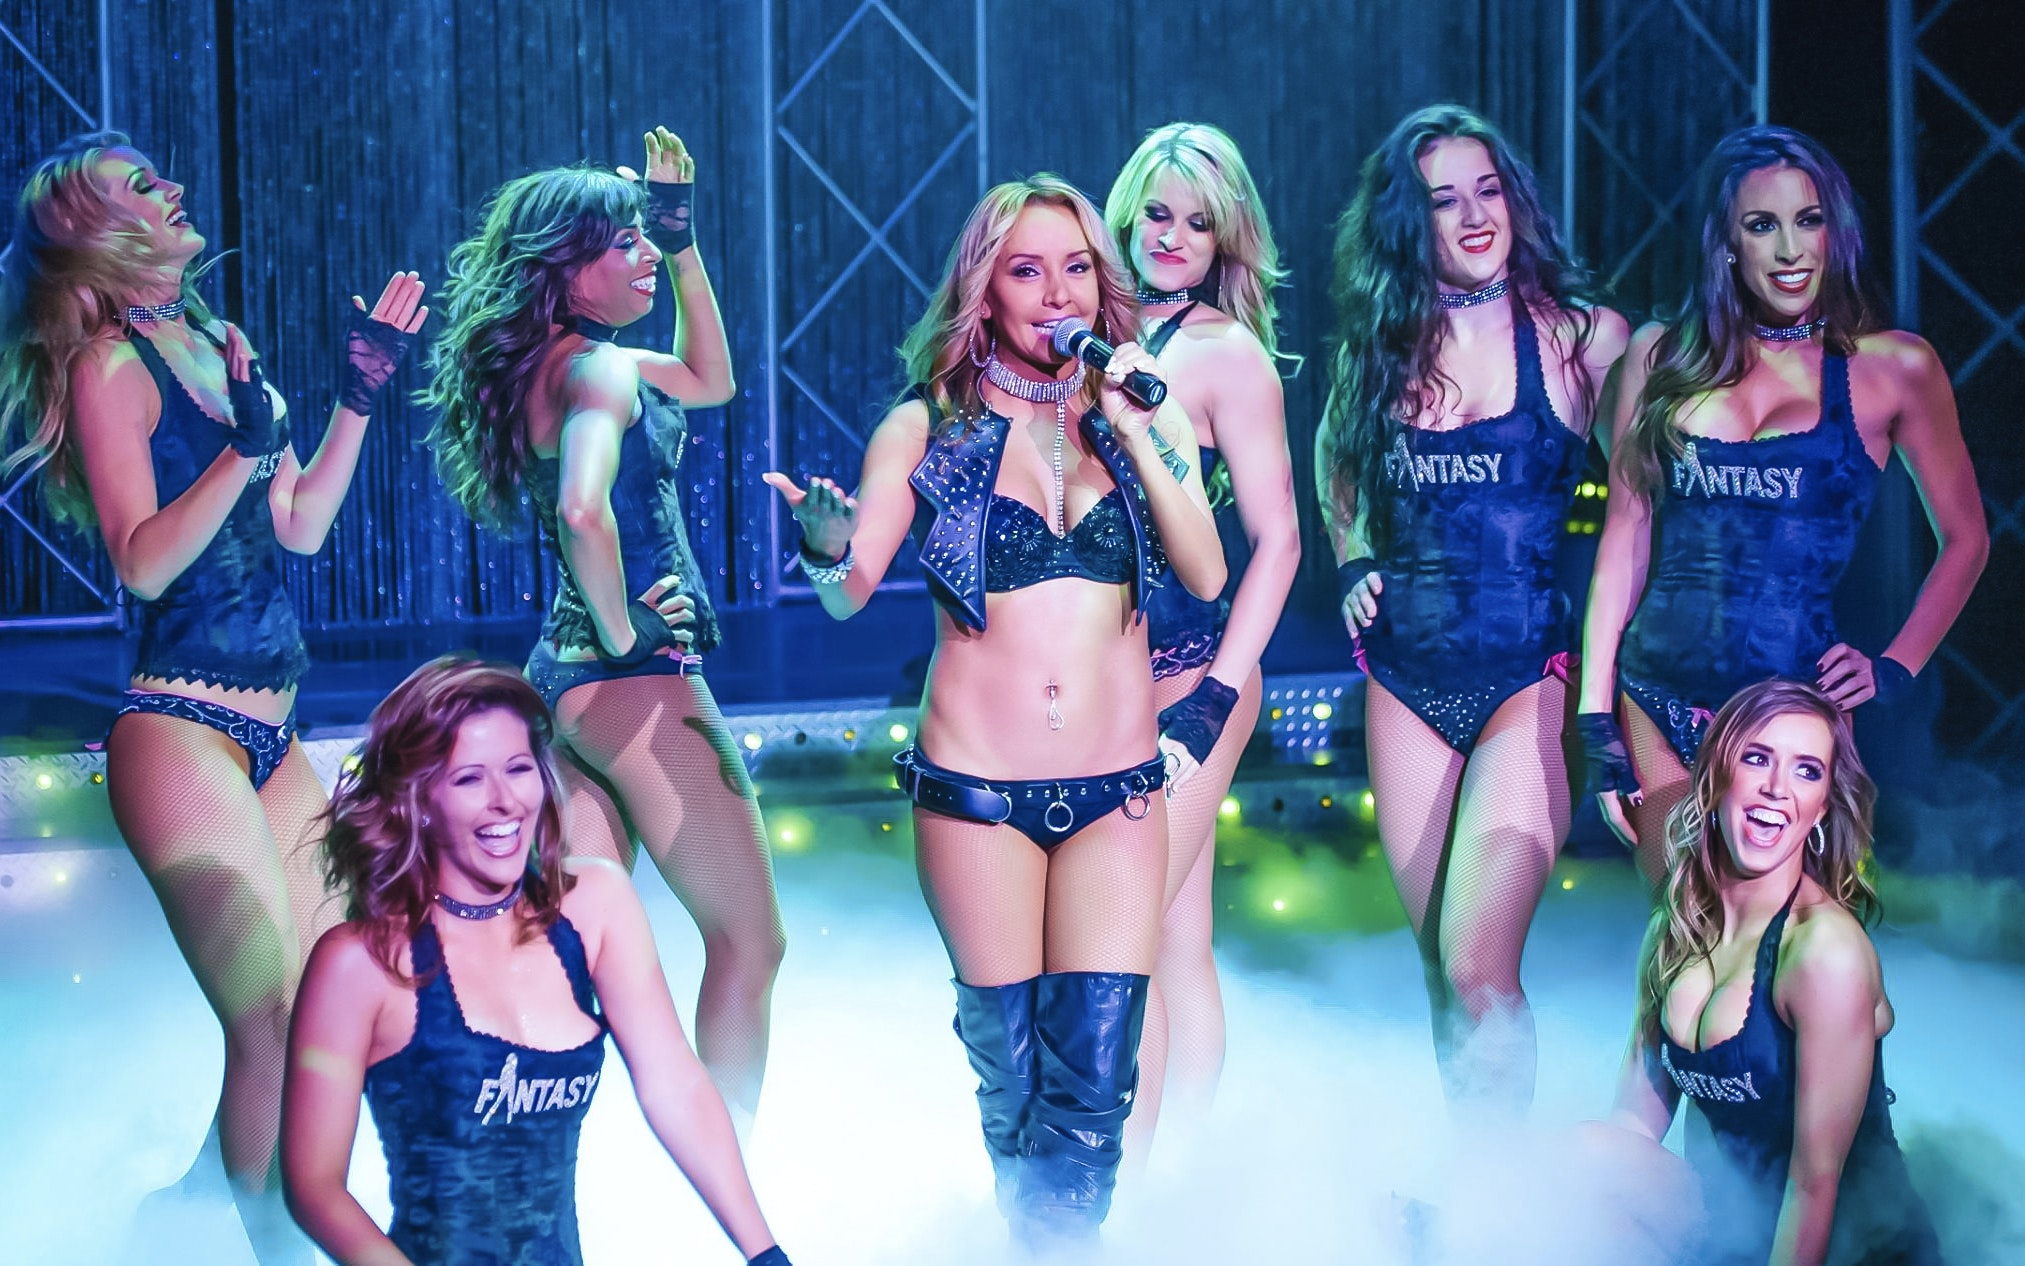 Something hottest adult shows in vegas think, that